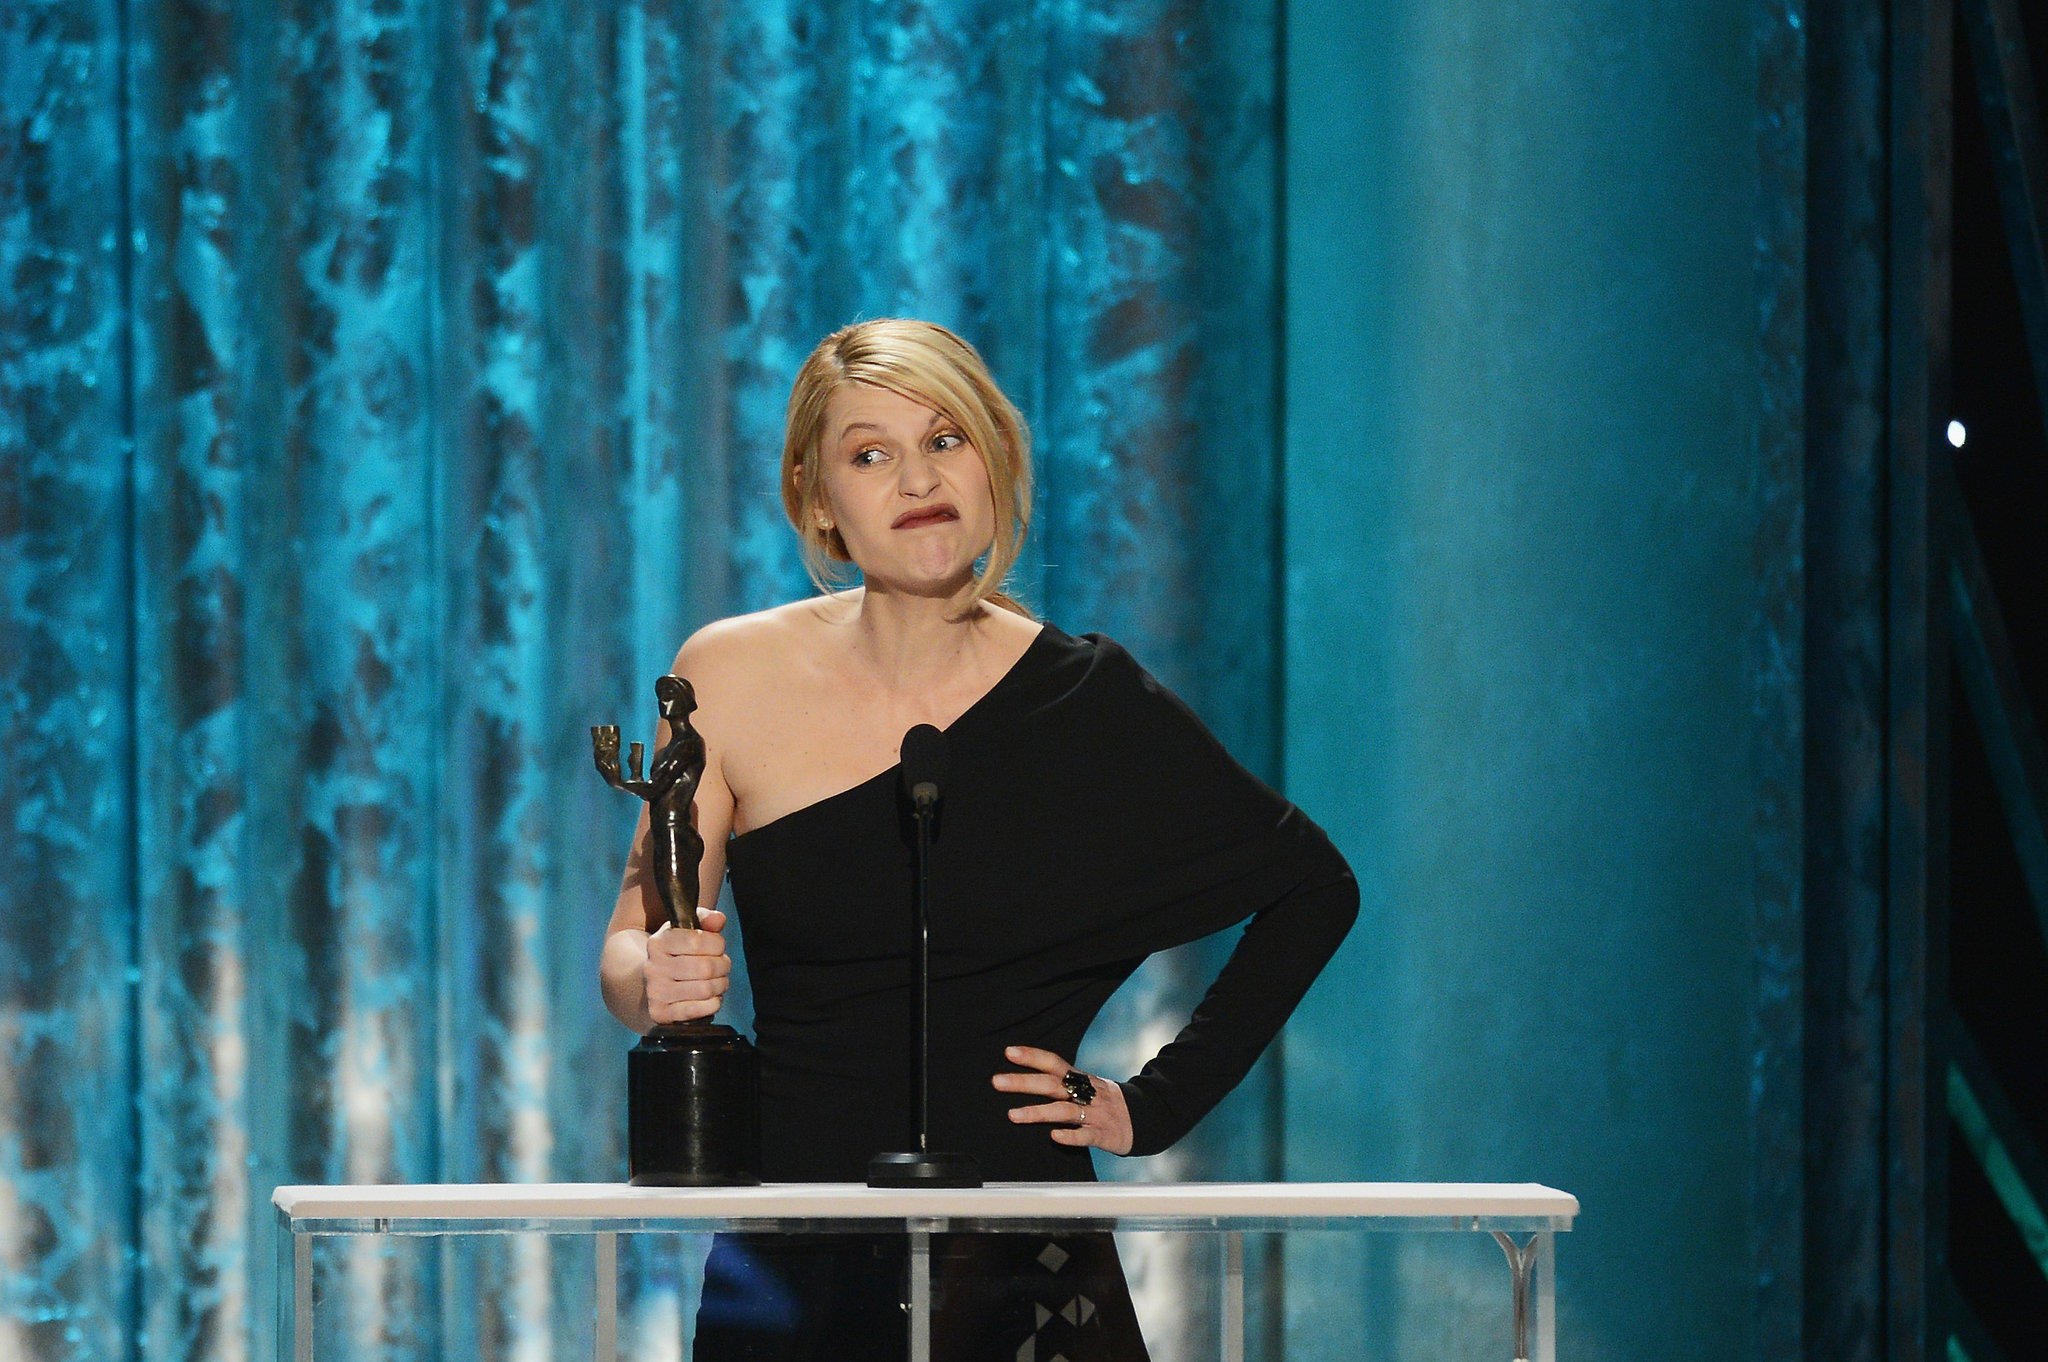 Claire Danes got a few laughs during her 2013 acceptance speech for Homeland.